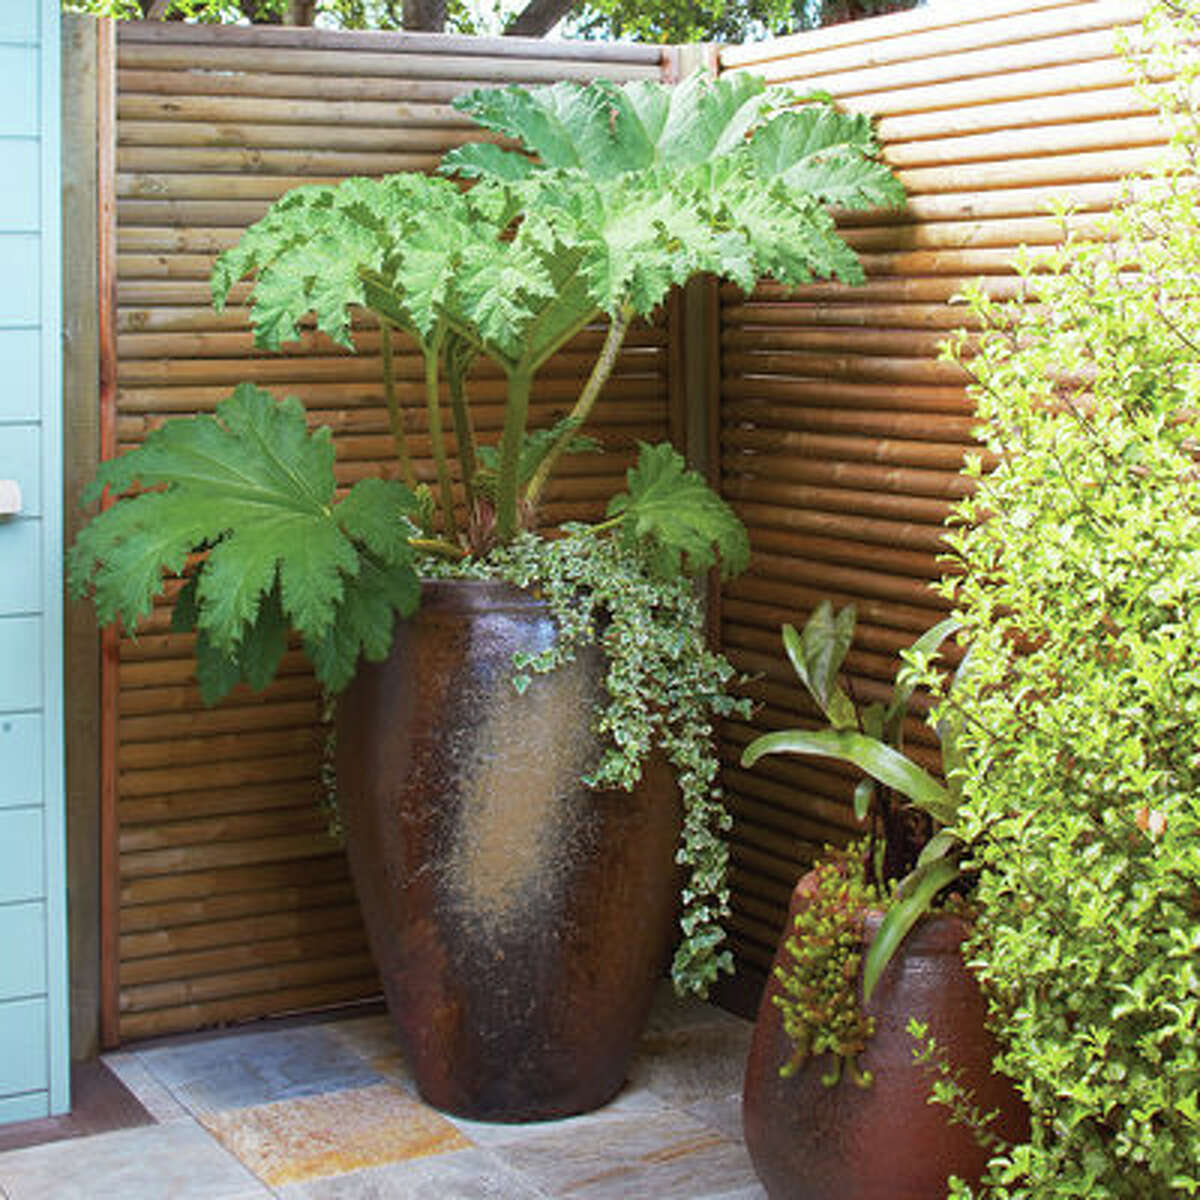 Privacy screen The best vacation spot can sometimes be in your very own backyard. At the enclosed end of this deck, panels made of horizontal tree stakes allow for peace and privacy. Design: Gary Marsh Design, Novato, CA (415/897-7623)